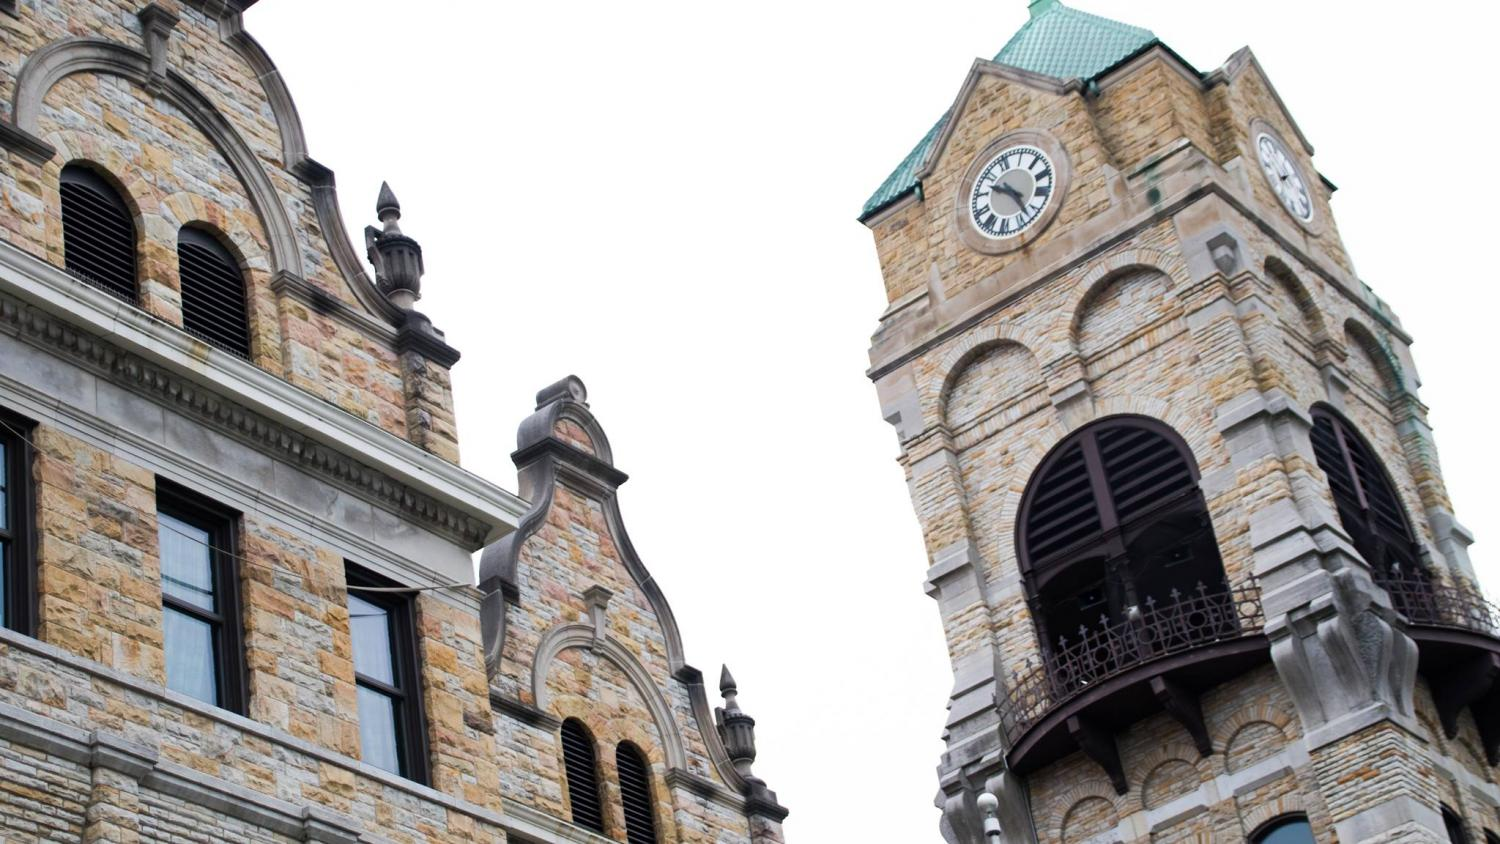 The preliminary hearing is now scheduled for Wednesday, Oct. 25 at 10 a.m. in the Lackawanna County Courthouse.